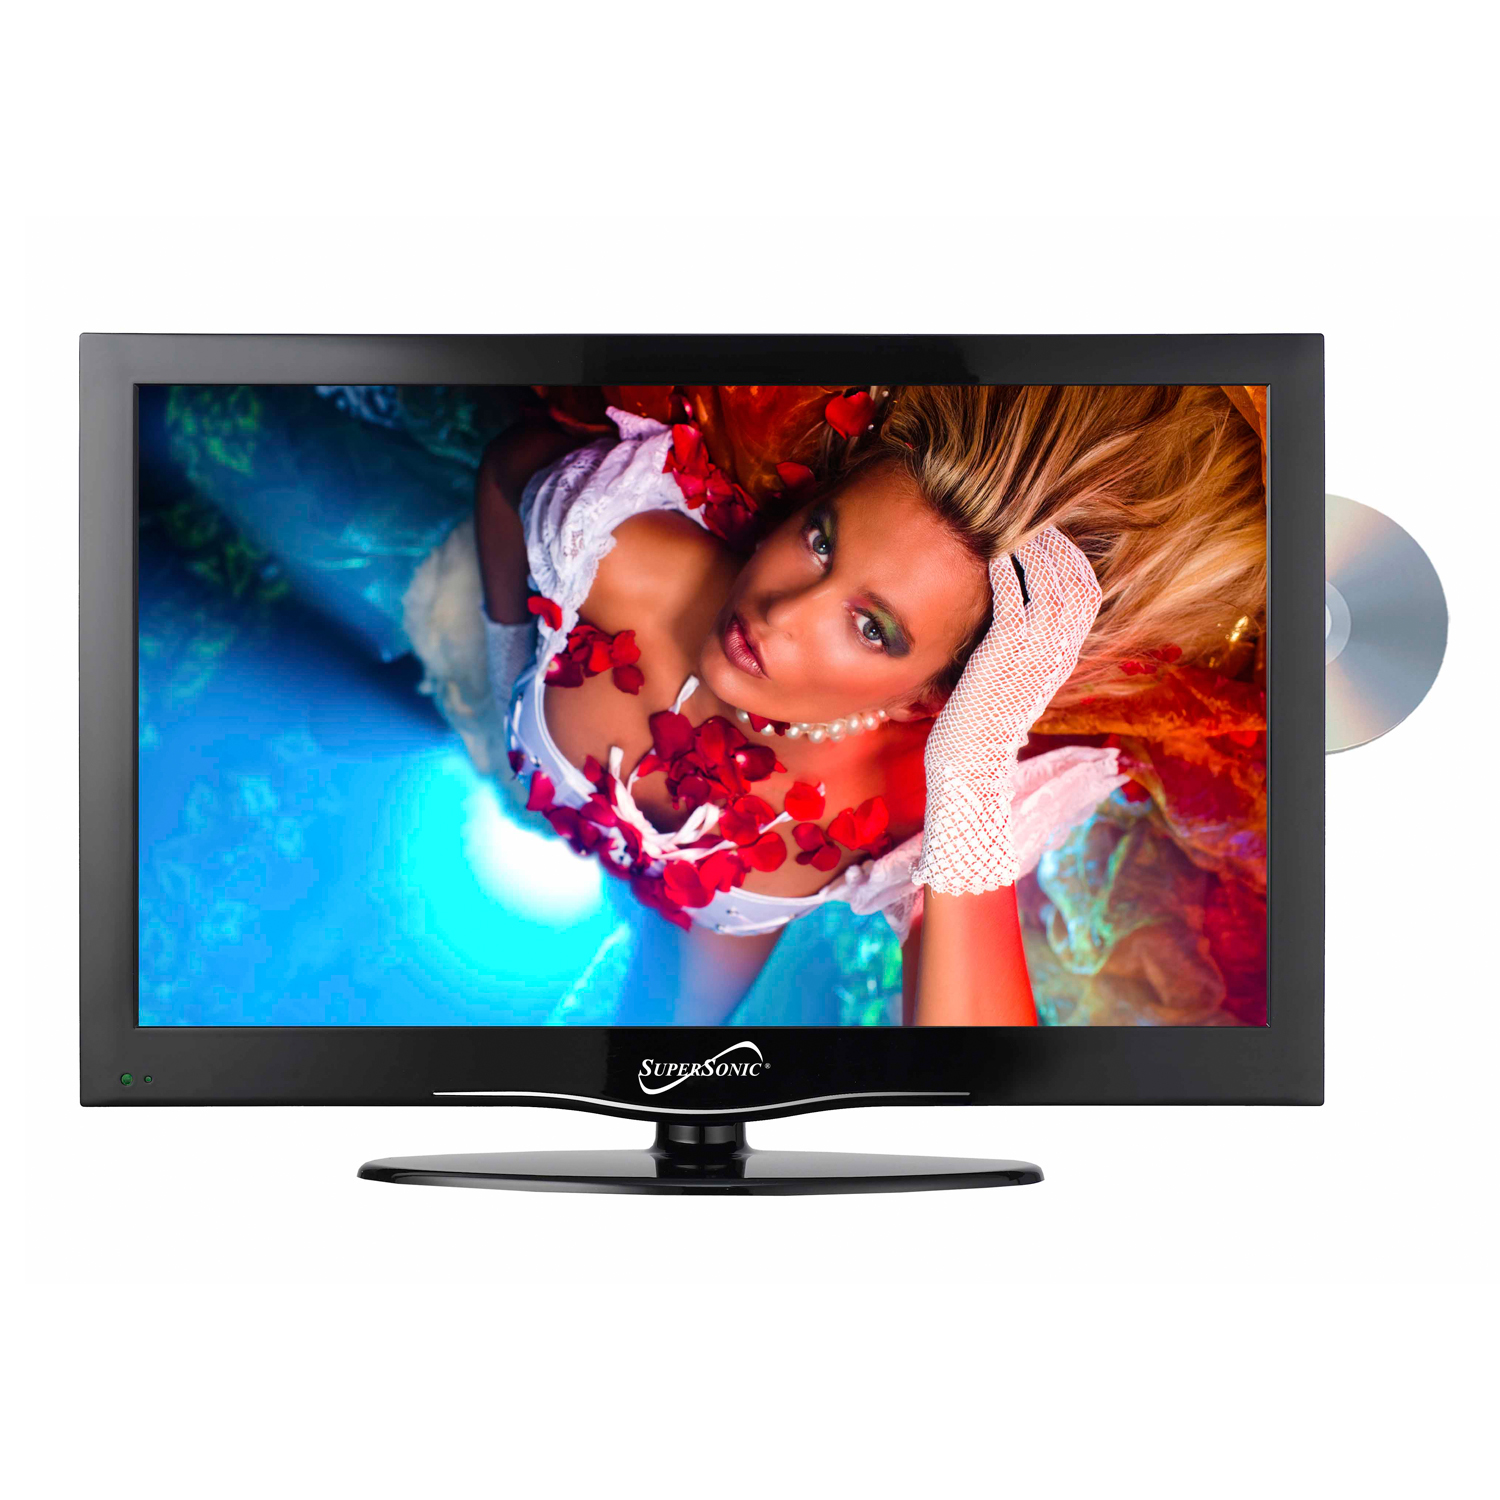 "Supersonic SC-1912 19"" Widescreen LED HDTV with Built-in DVD Player at Sears.com"